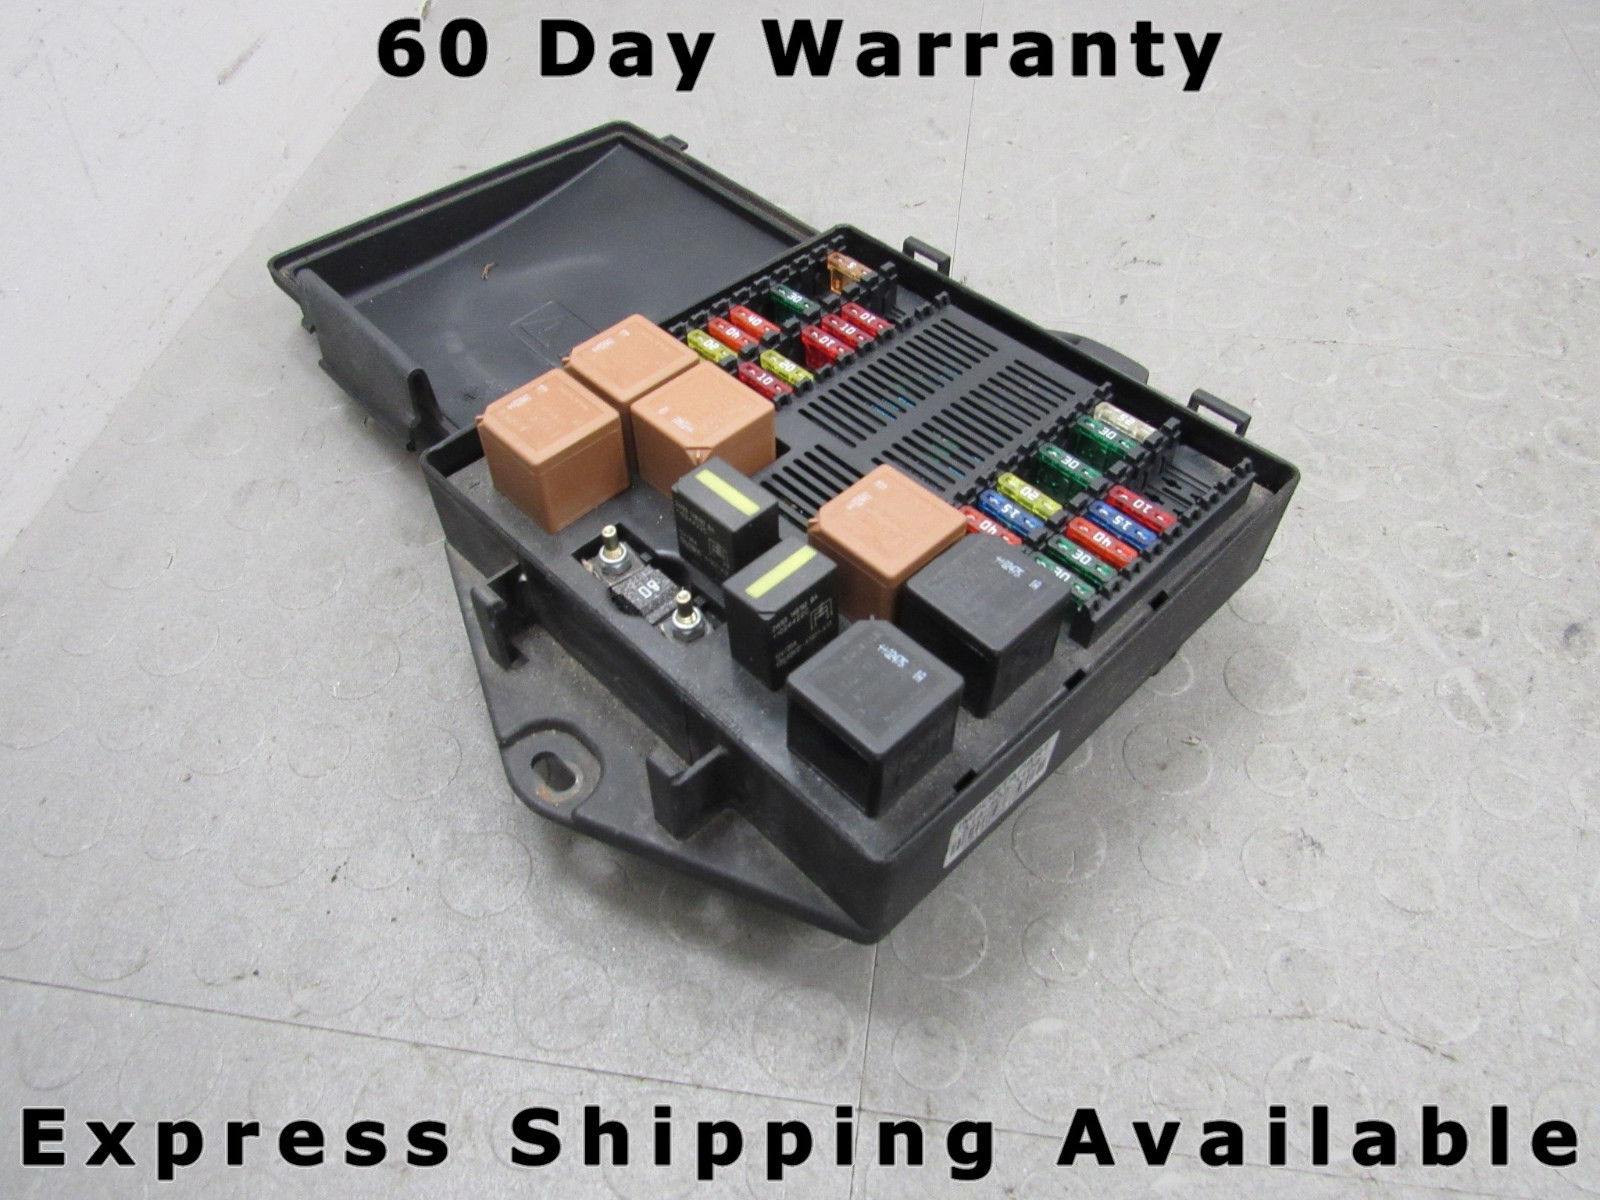 04-05 XJ8 Vanden Plas Engine Fuse Relay Box Junction Block 2W93-14A073-AE A